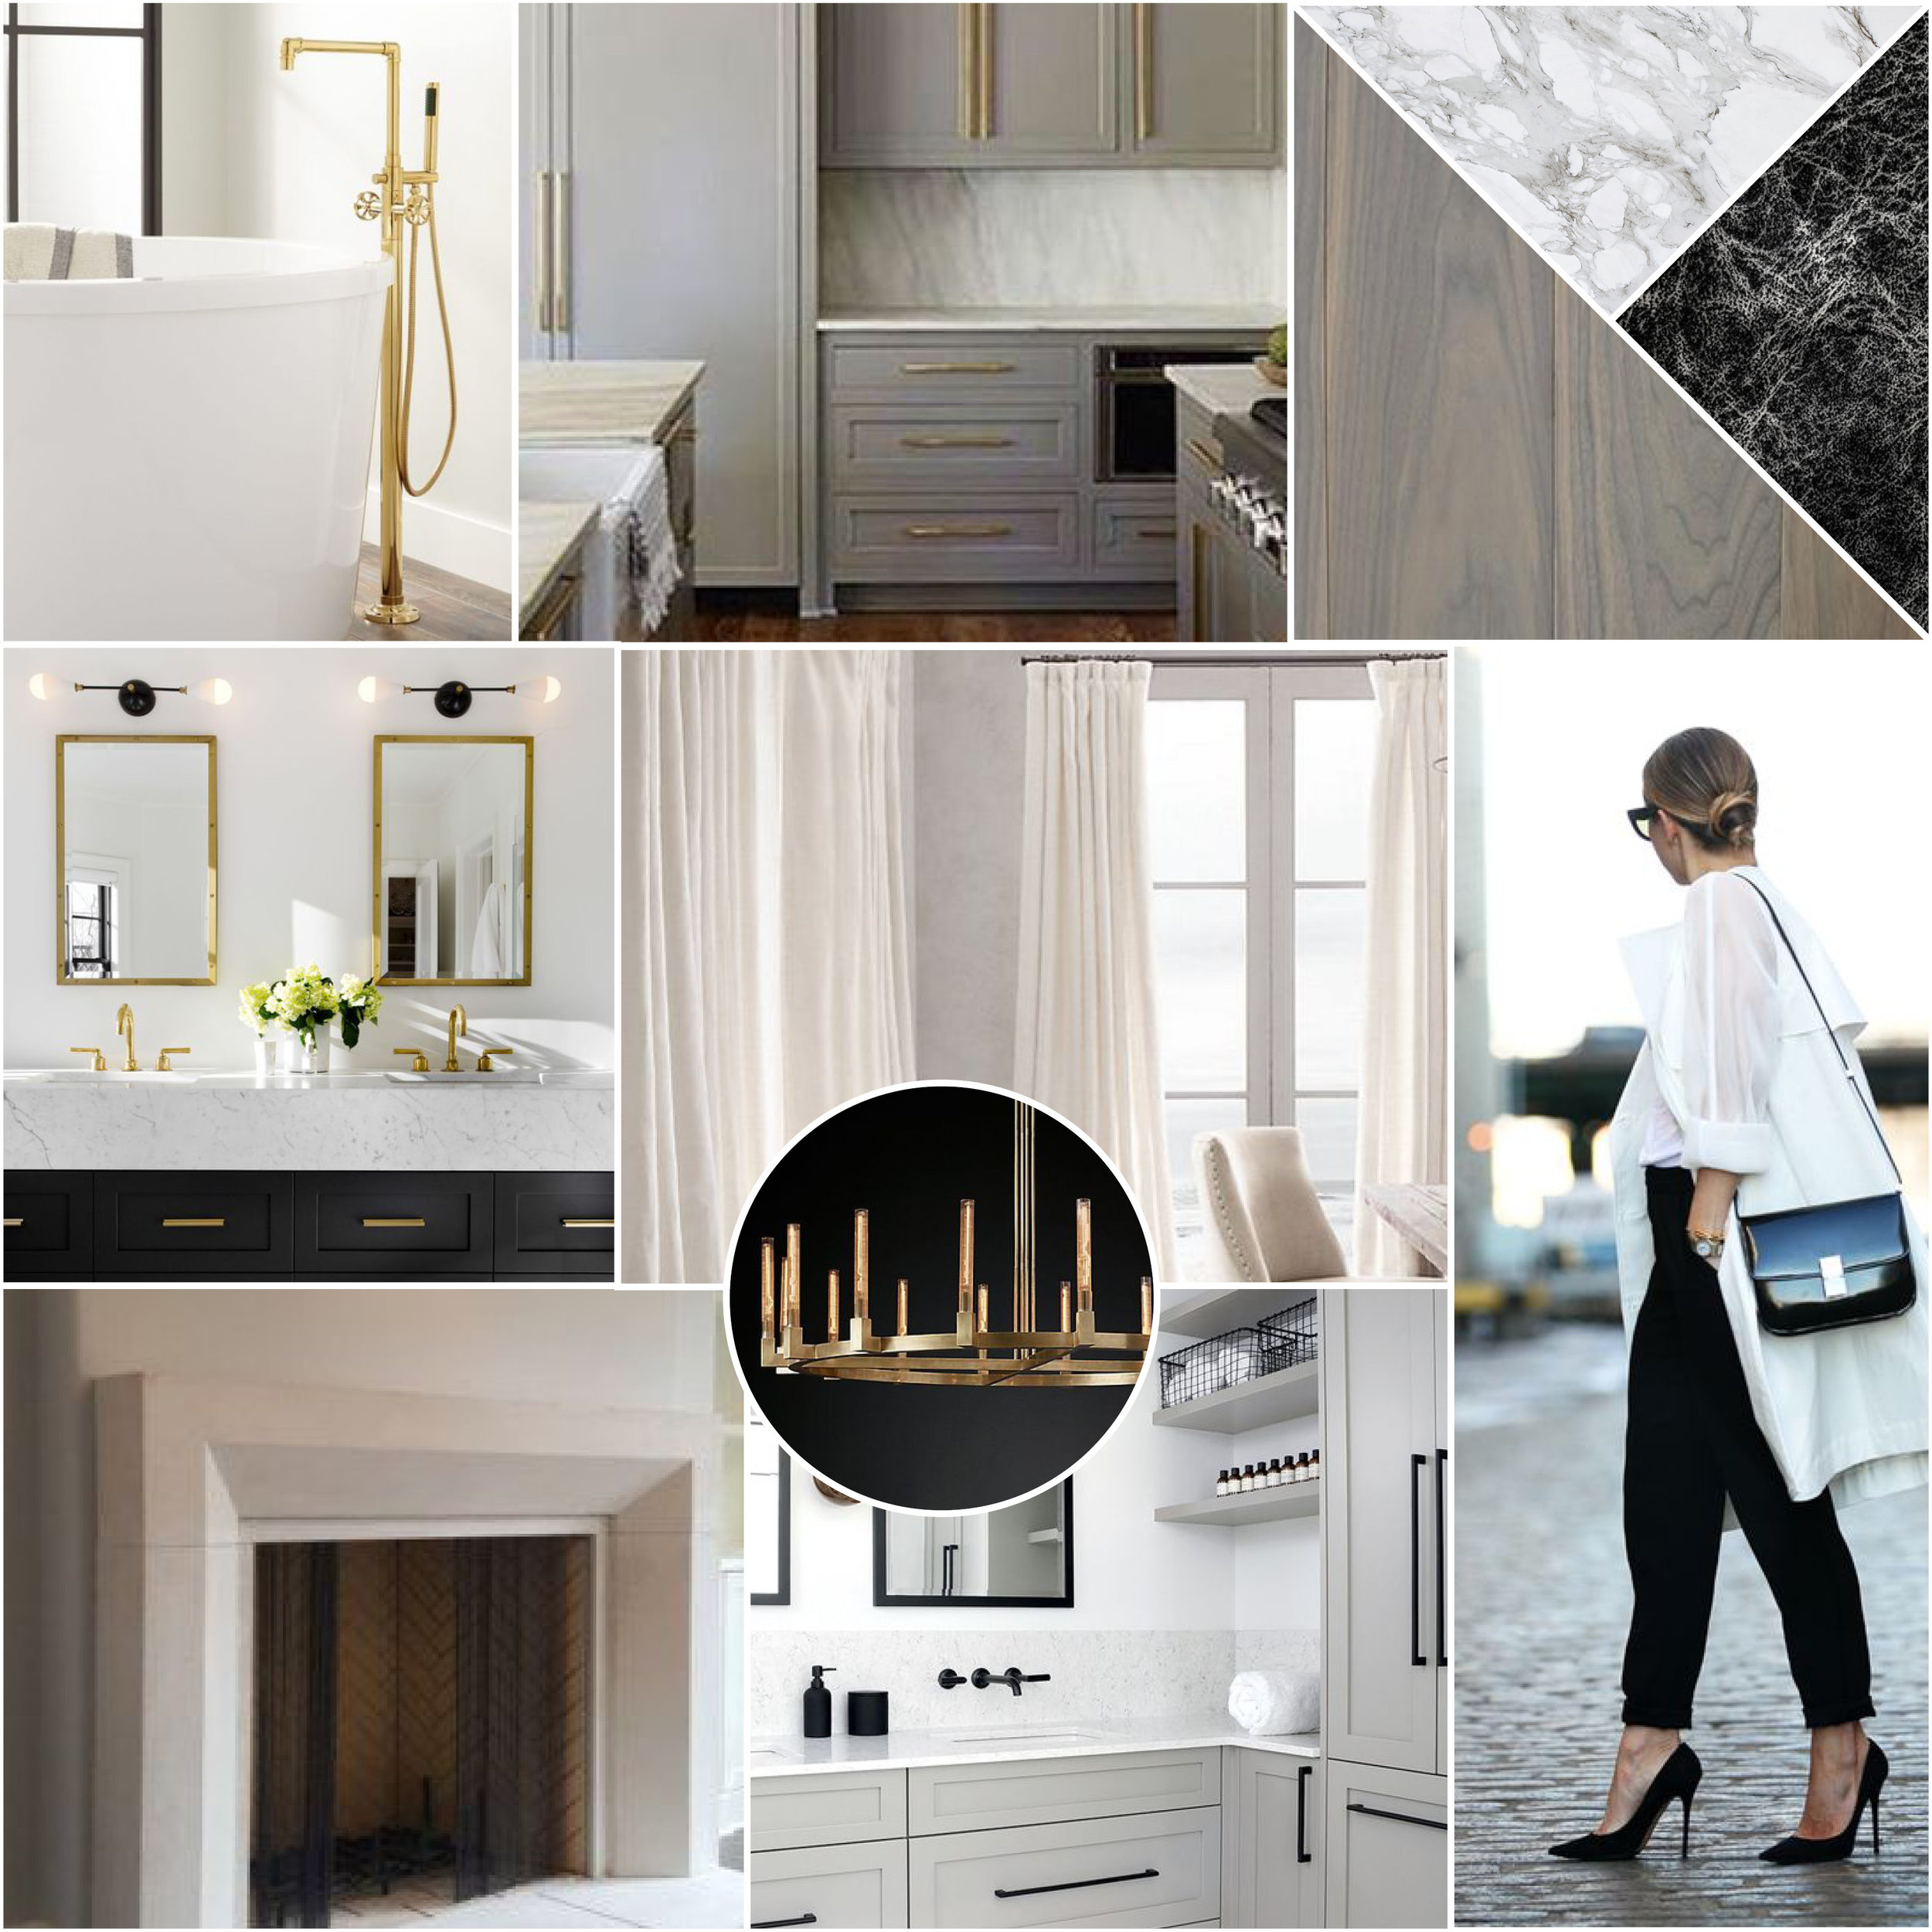 Before we got started with the design, we created a moodboard to convey the aesthetic we were aiming for to make sure our client was happy with the direction we were heading in. This client responded really well to warm neutrals and clean white and gray images contrasted with black and brass metals.